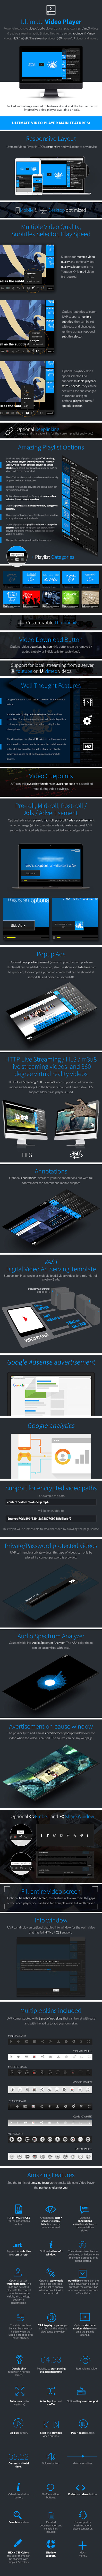 Ultimate Video Player - 7